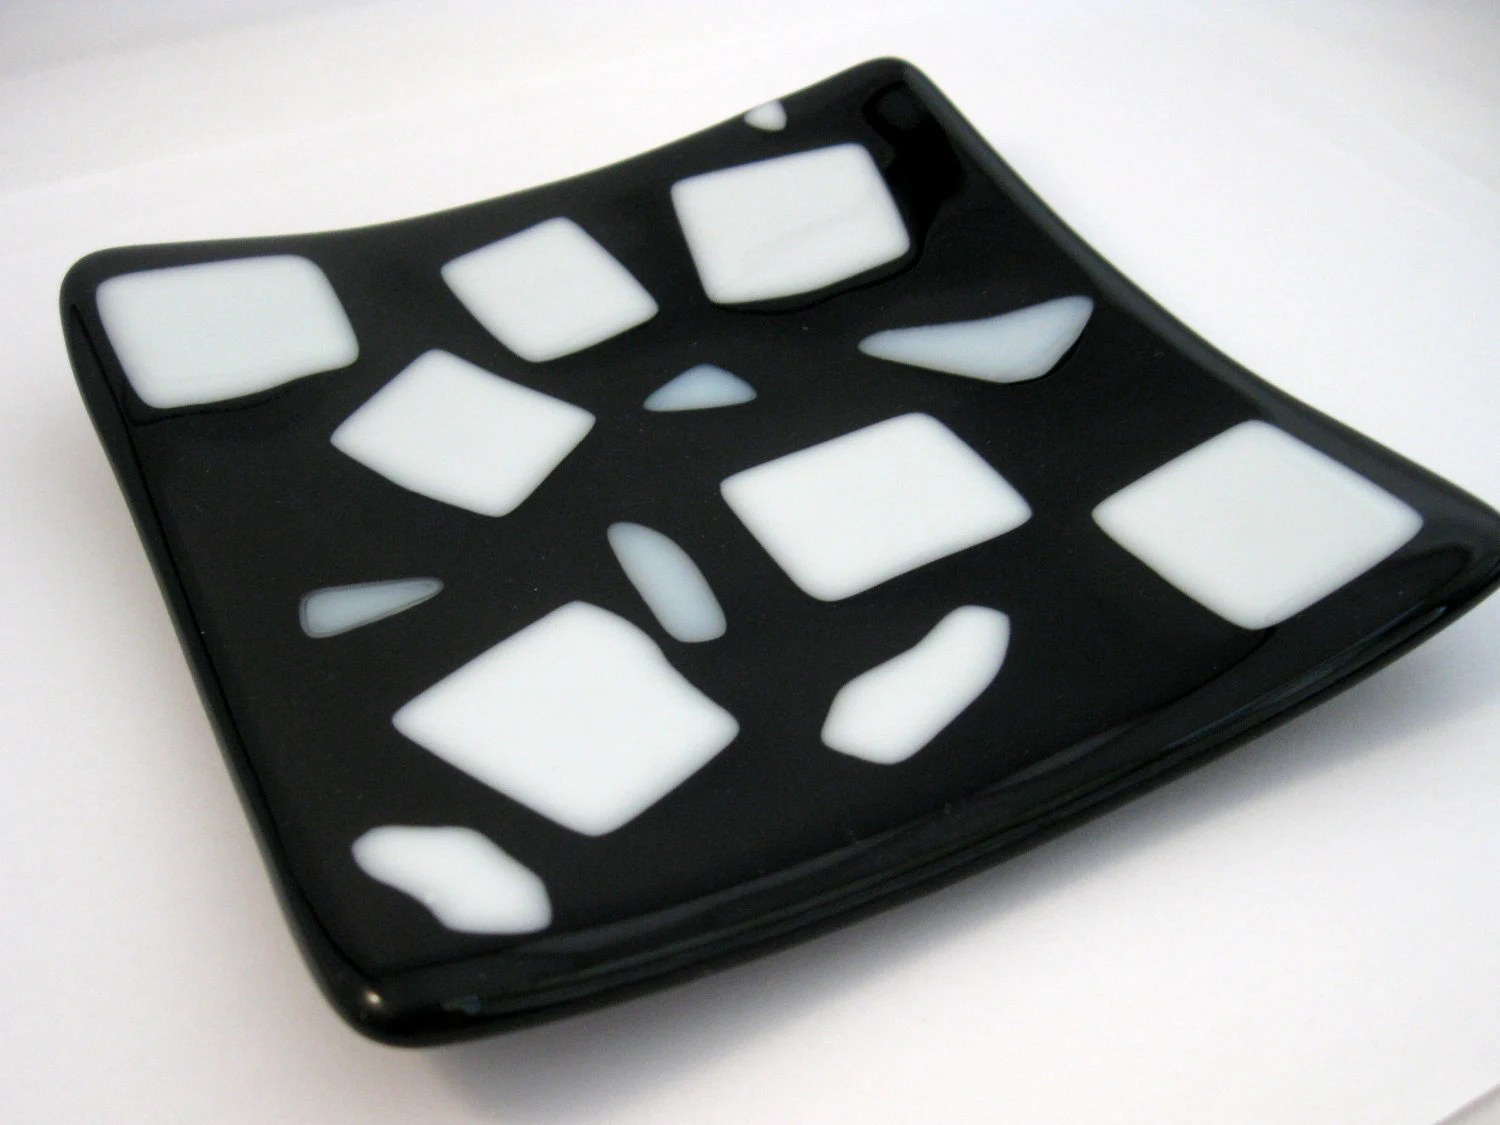 modern home decor - Domino, black white plate, black and white, fused glass, sushi dish, soap dish, modern decor - cjyummies